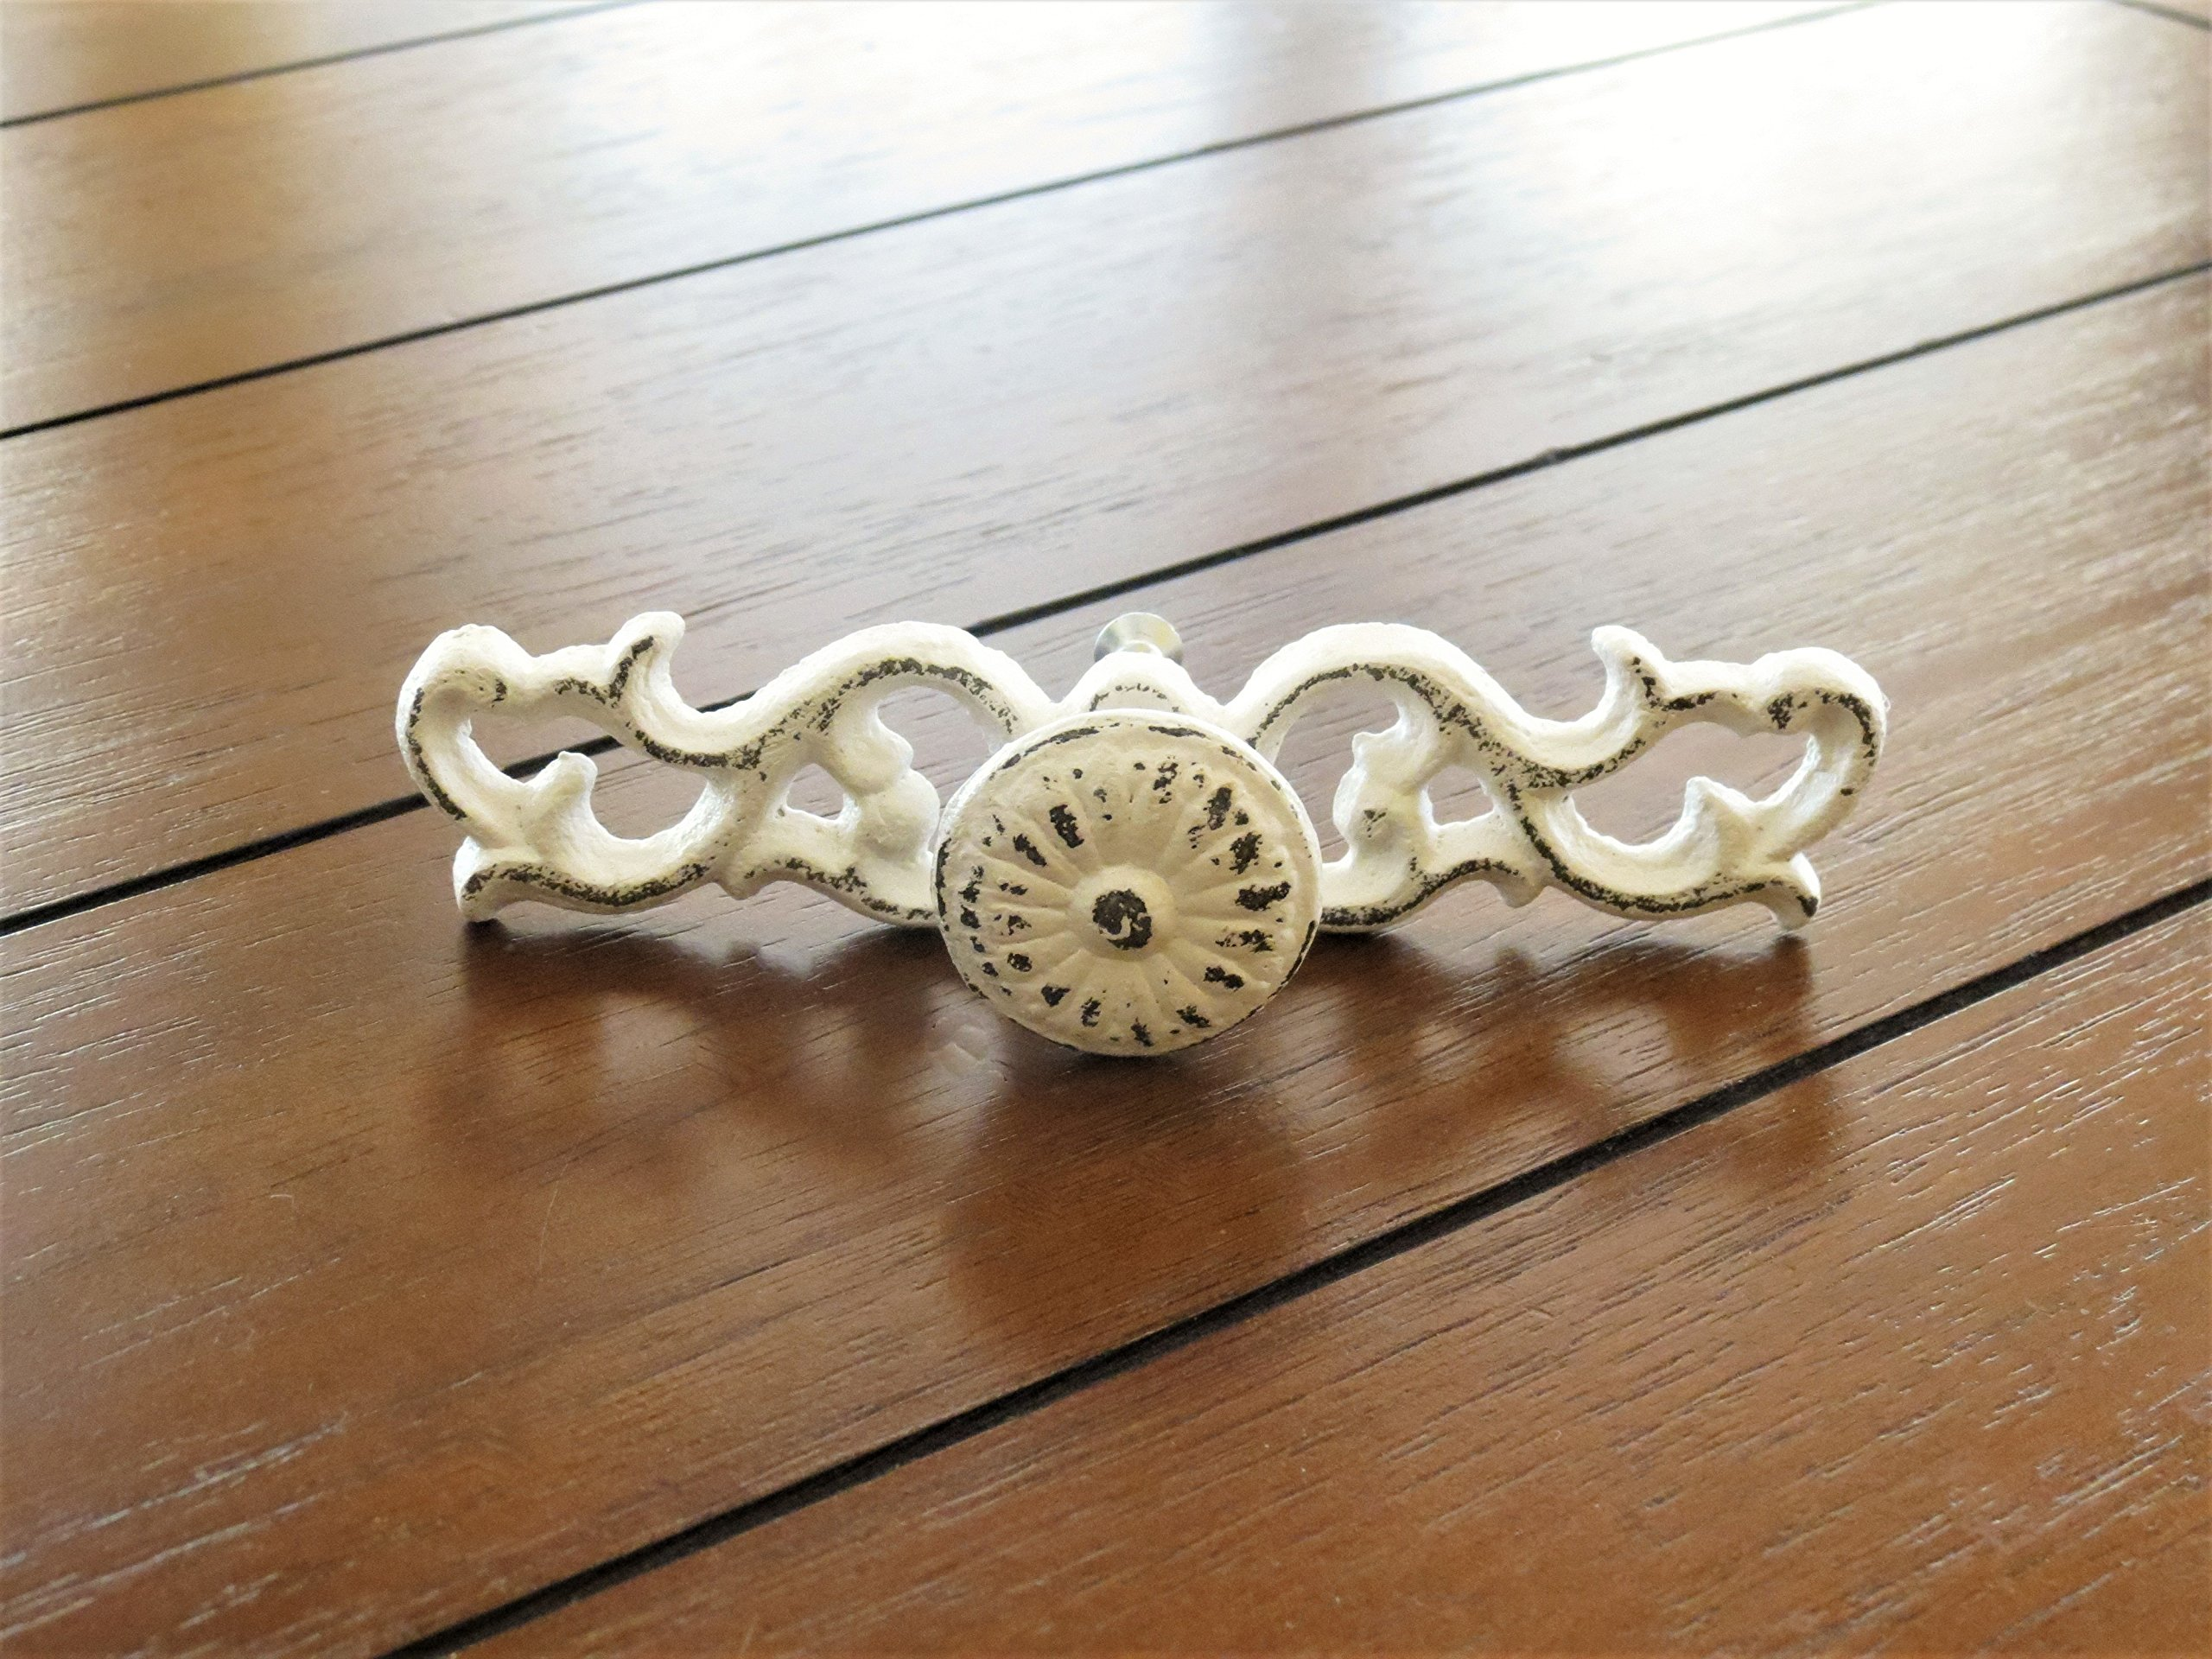 Shabby Chic Scrolled Drawer Pulls Dresser Knobs Antique White or Pick Color